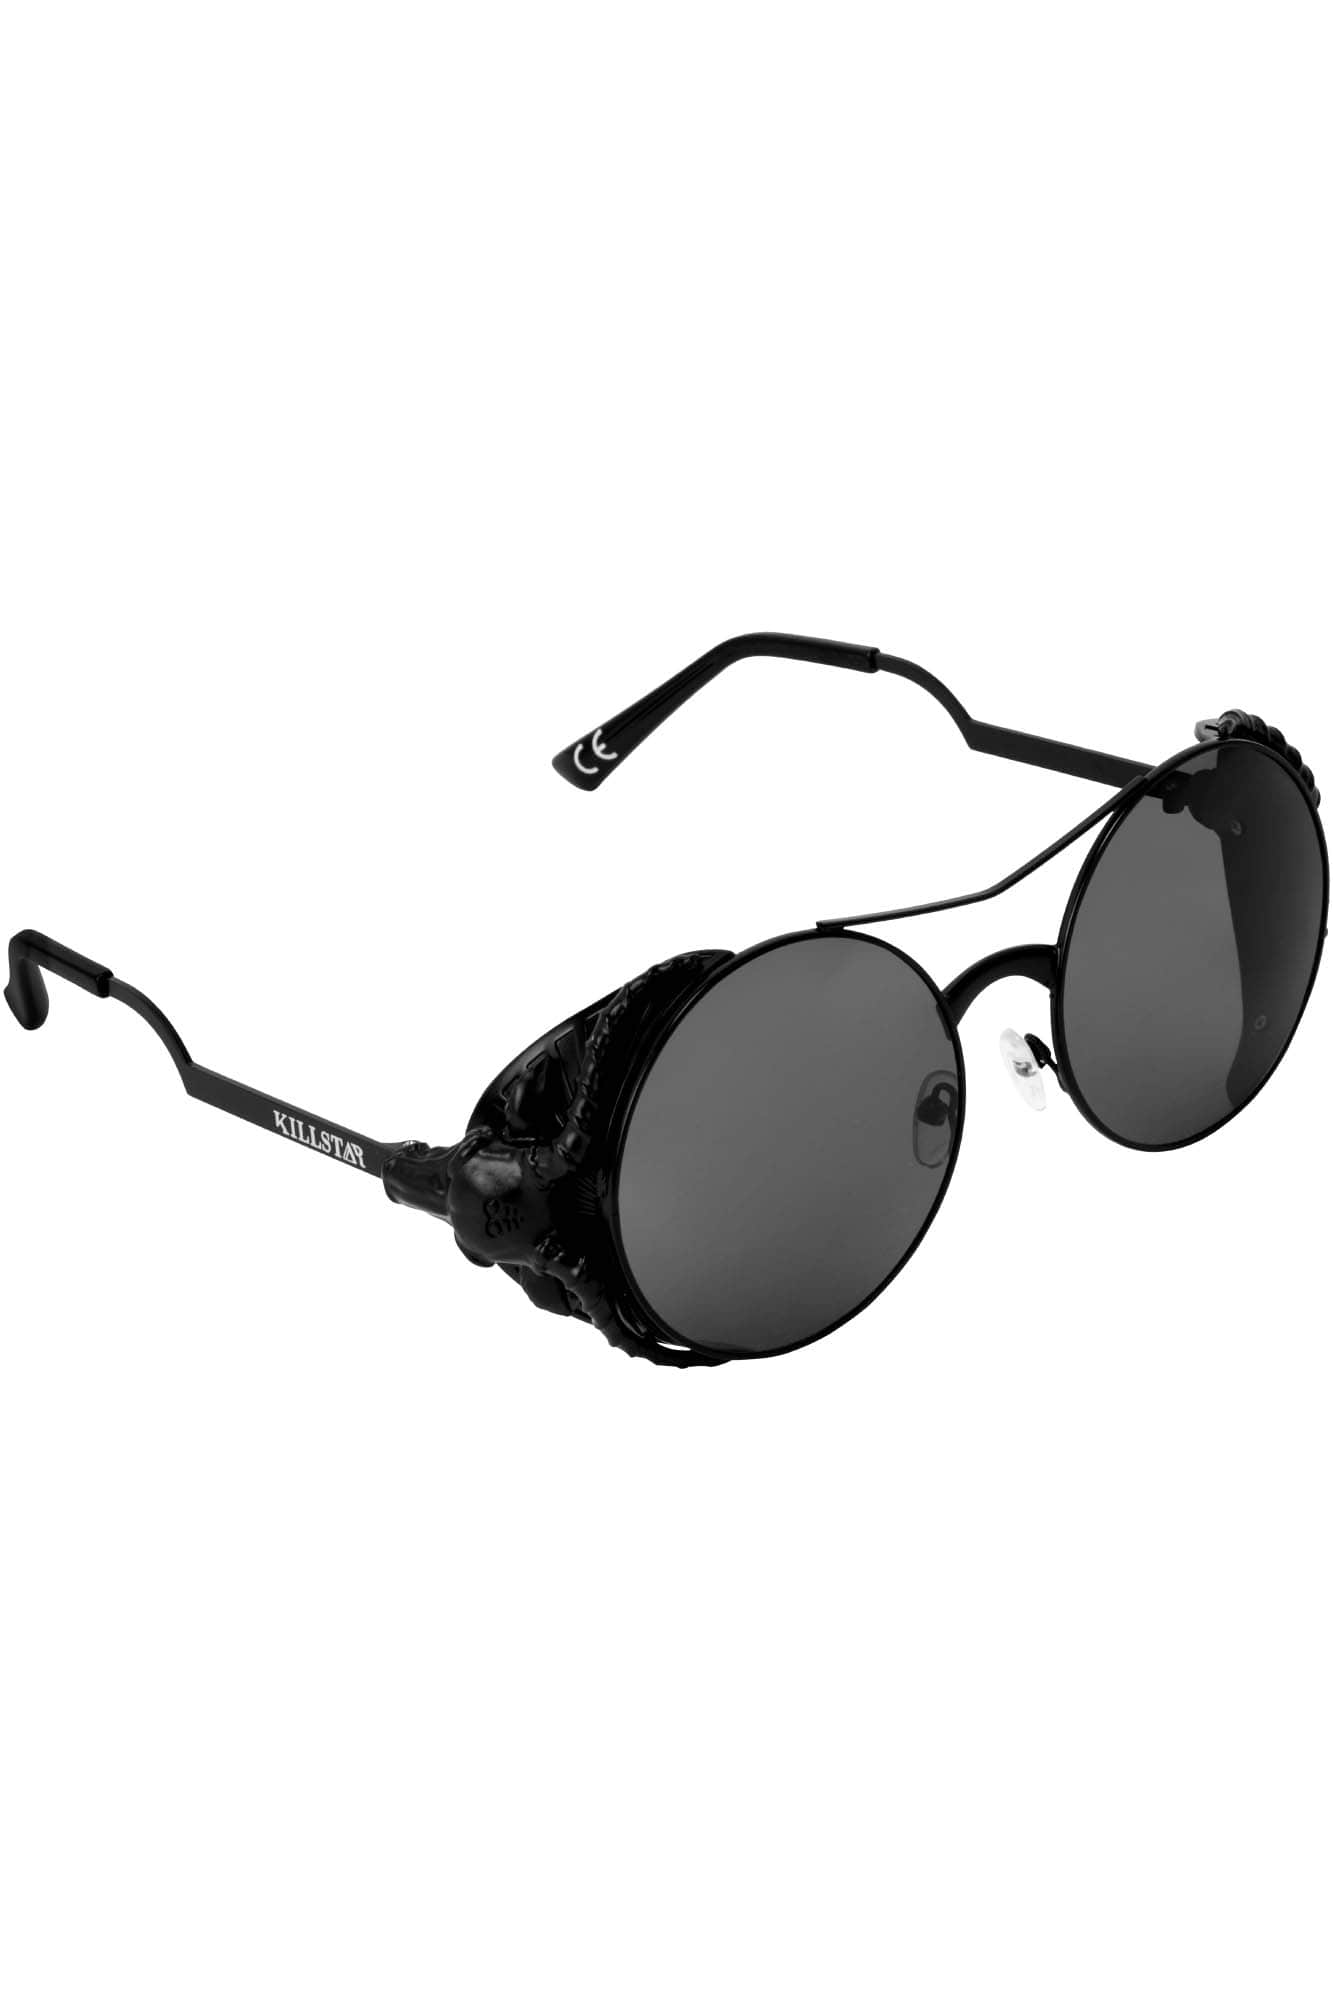 Baphomet Sunglasses (Black)